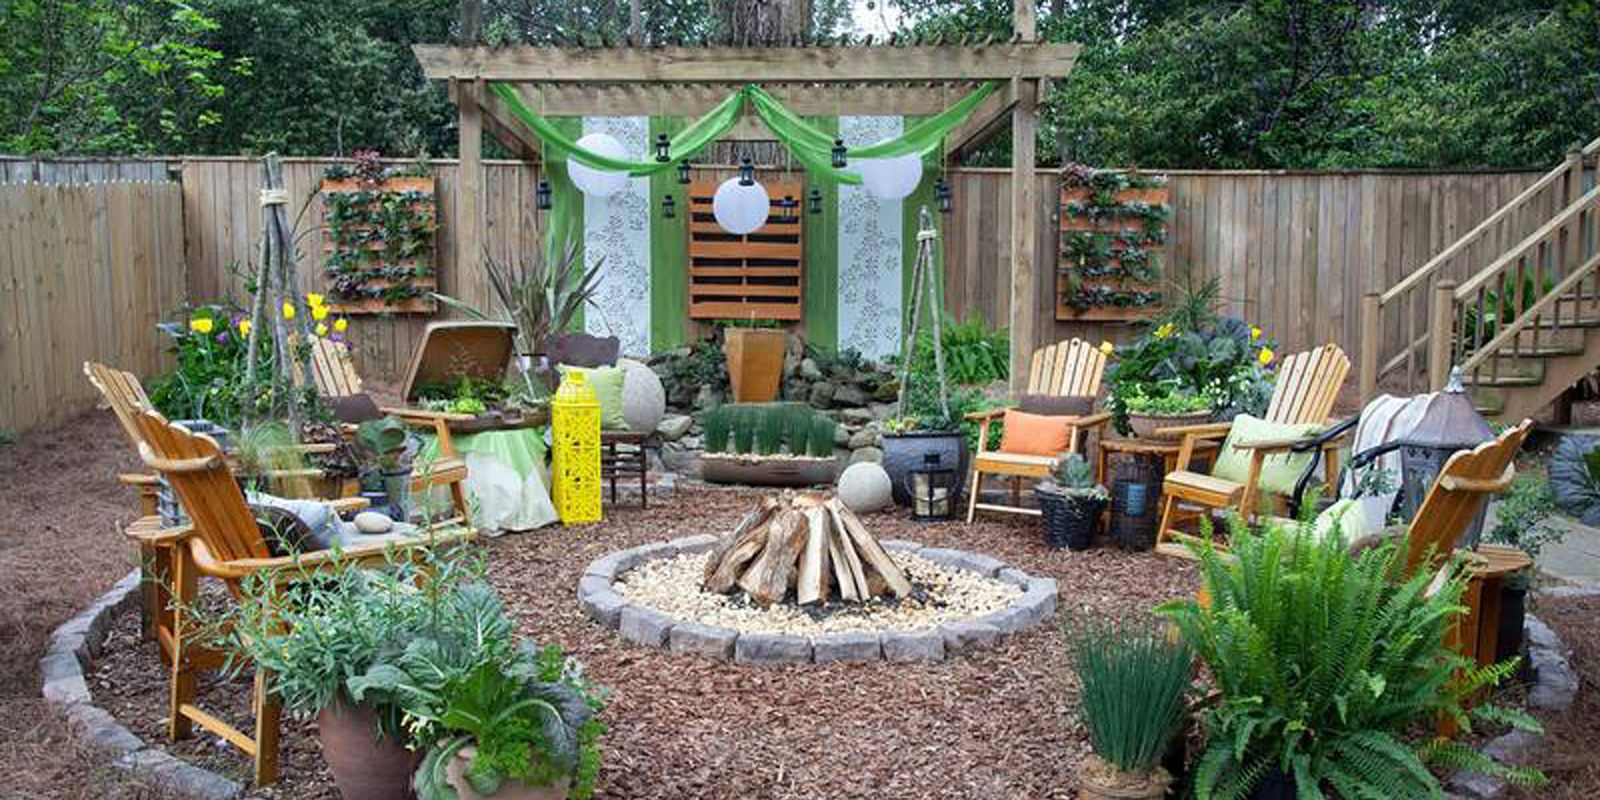 Backyard oasis beautiful backyard ideas - Critical elements for a backyard landscaping ...